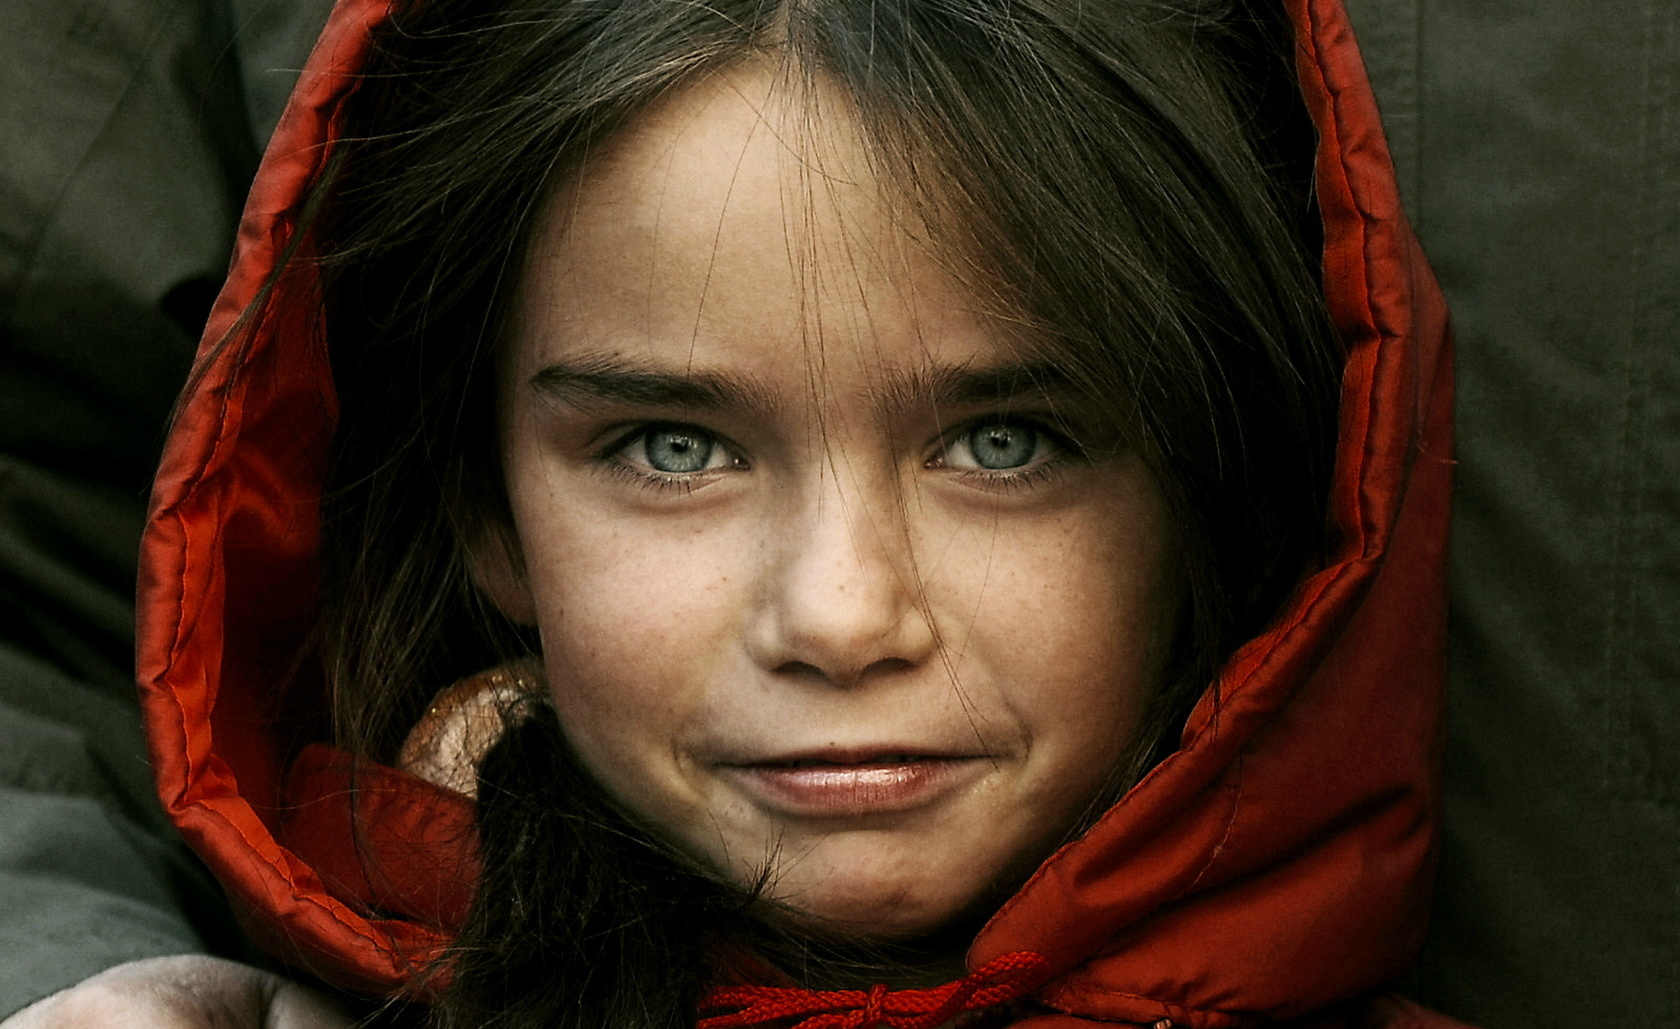 Afghan Girl Eyes Wallpaper Child Wallpaper And Background Image 1680x1029 Id